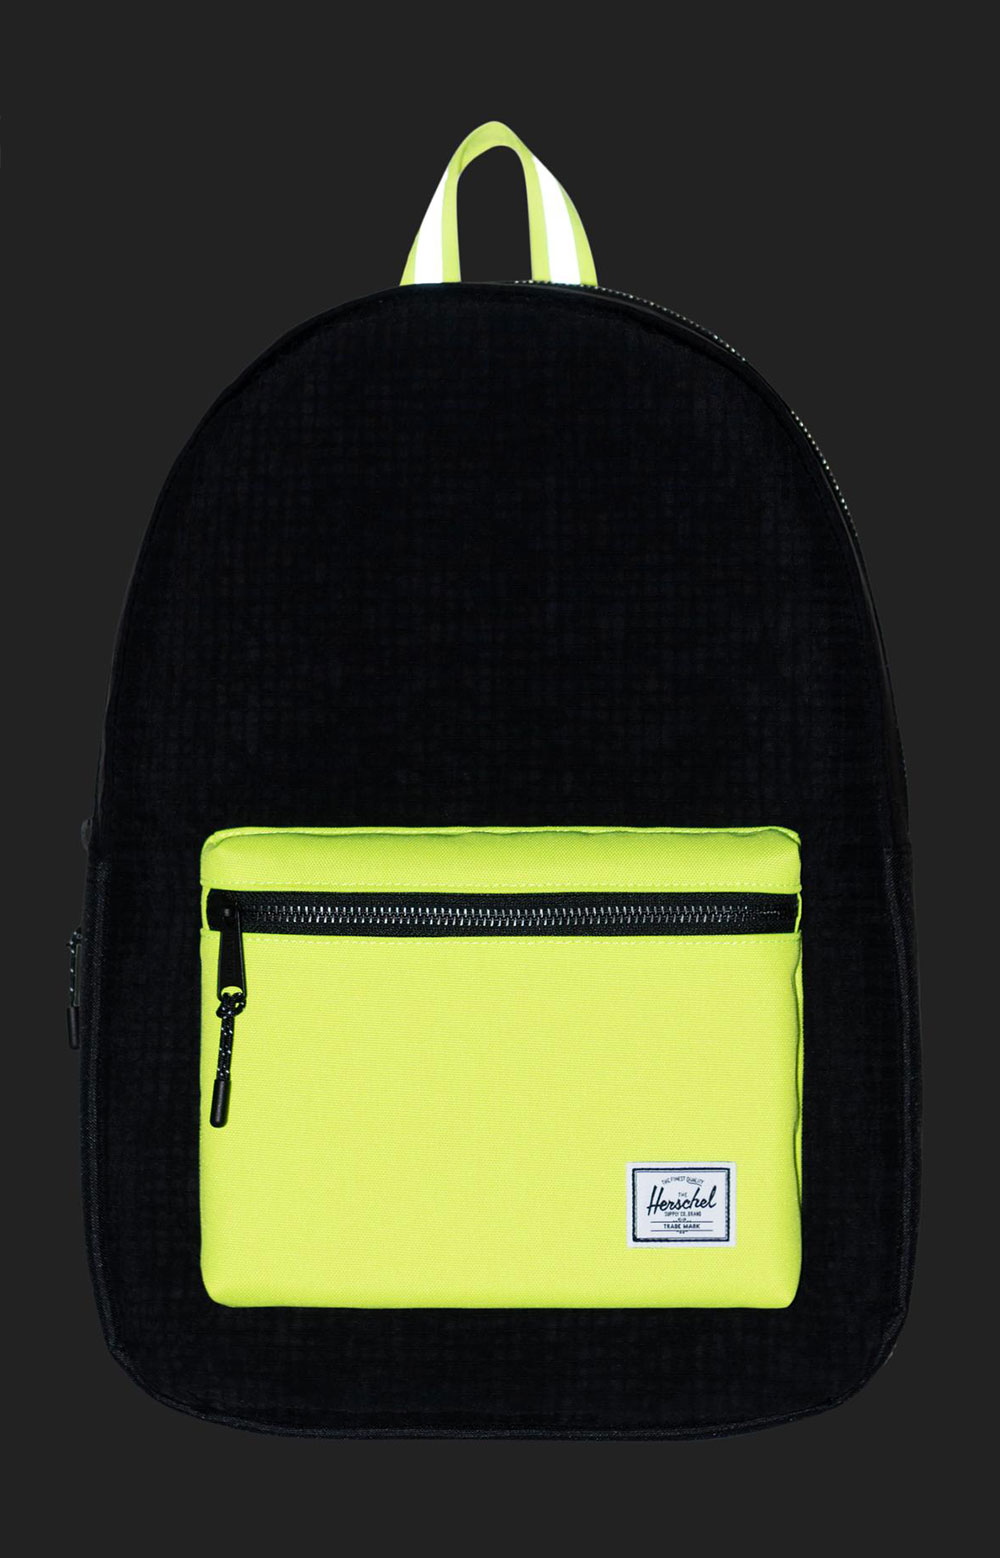 Settlement Backpack - Black Enzyme Ripstop/Black/Safety Yellow 2